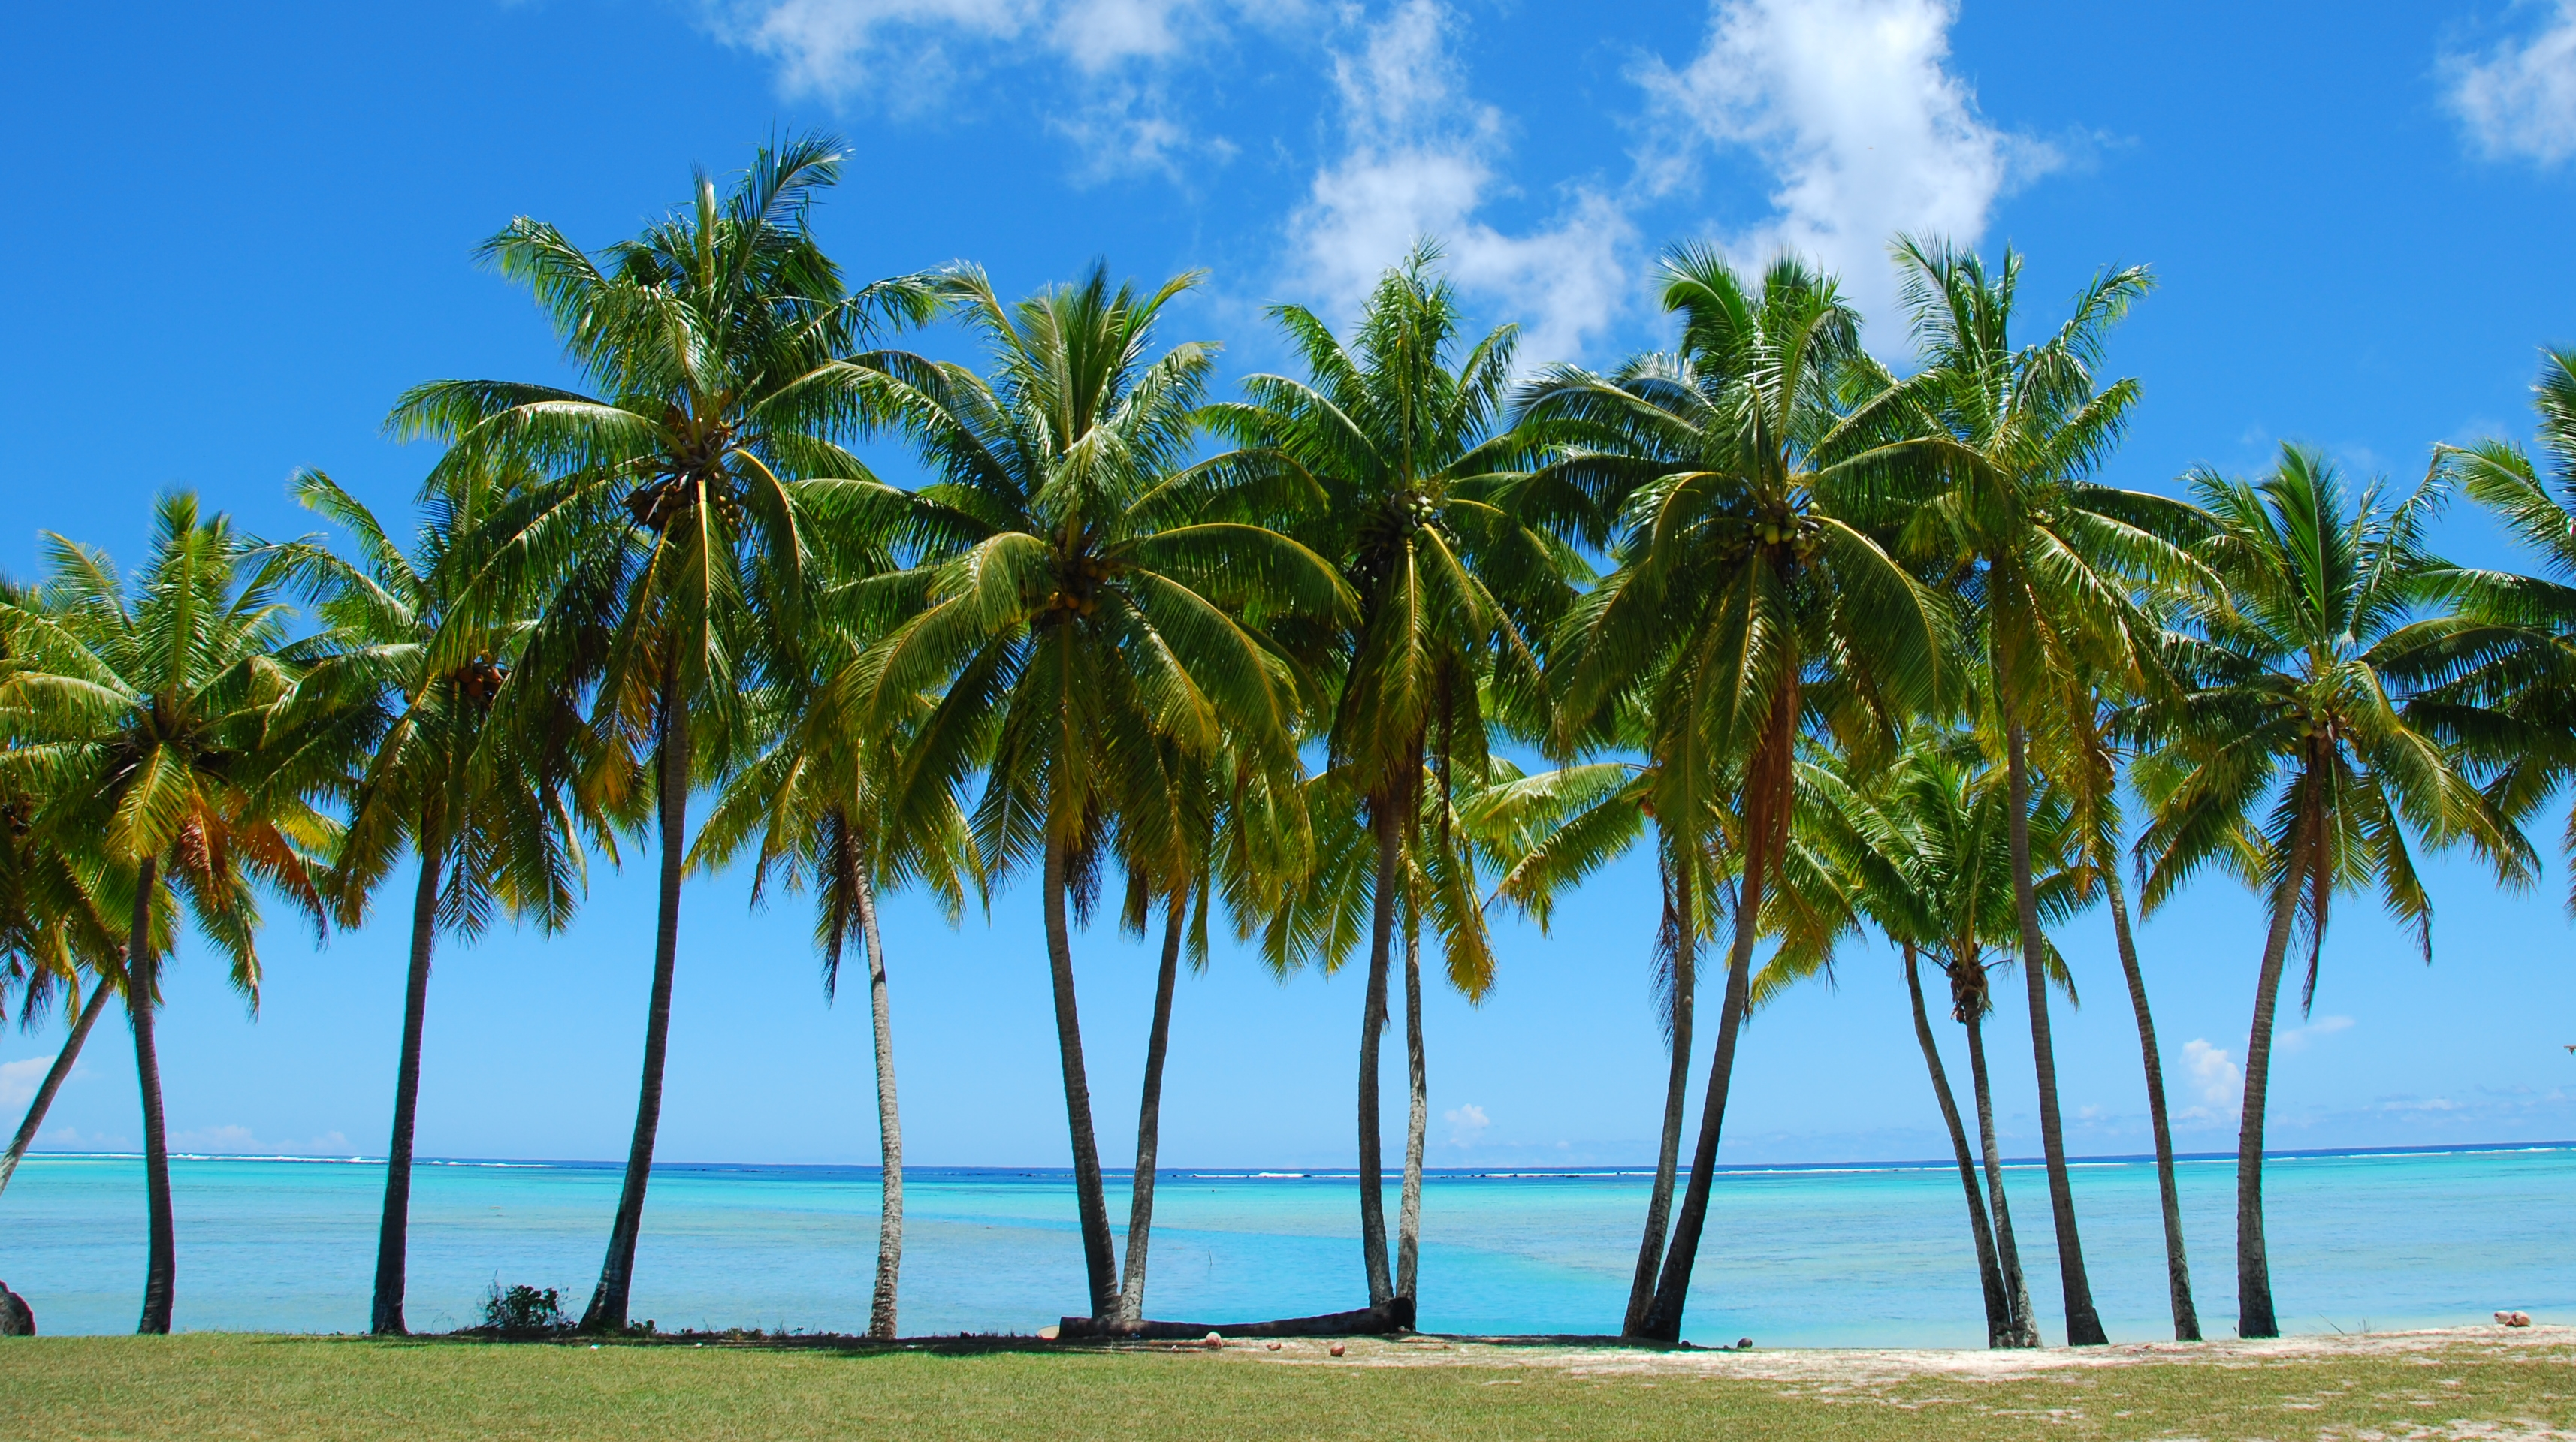 palm-trees-beach